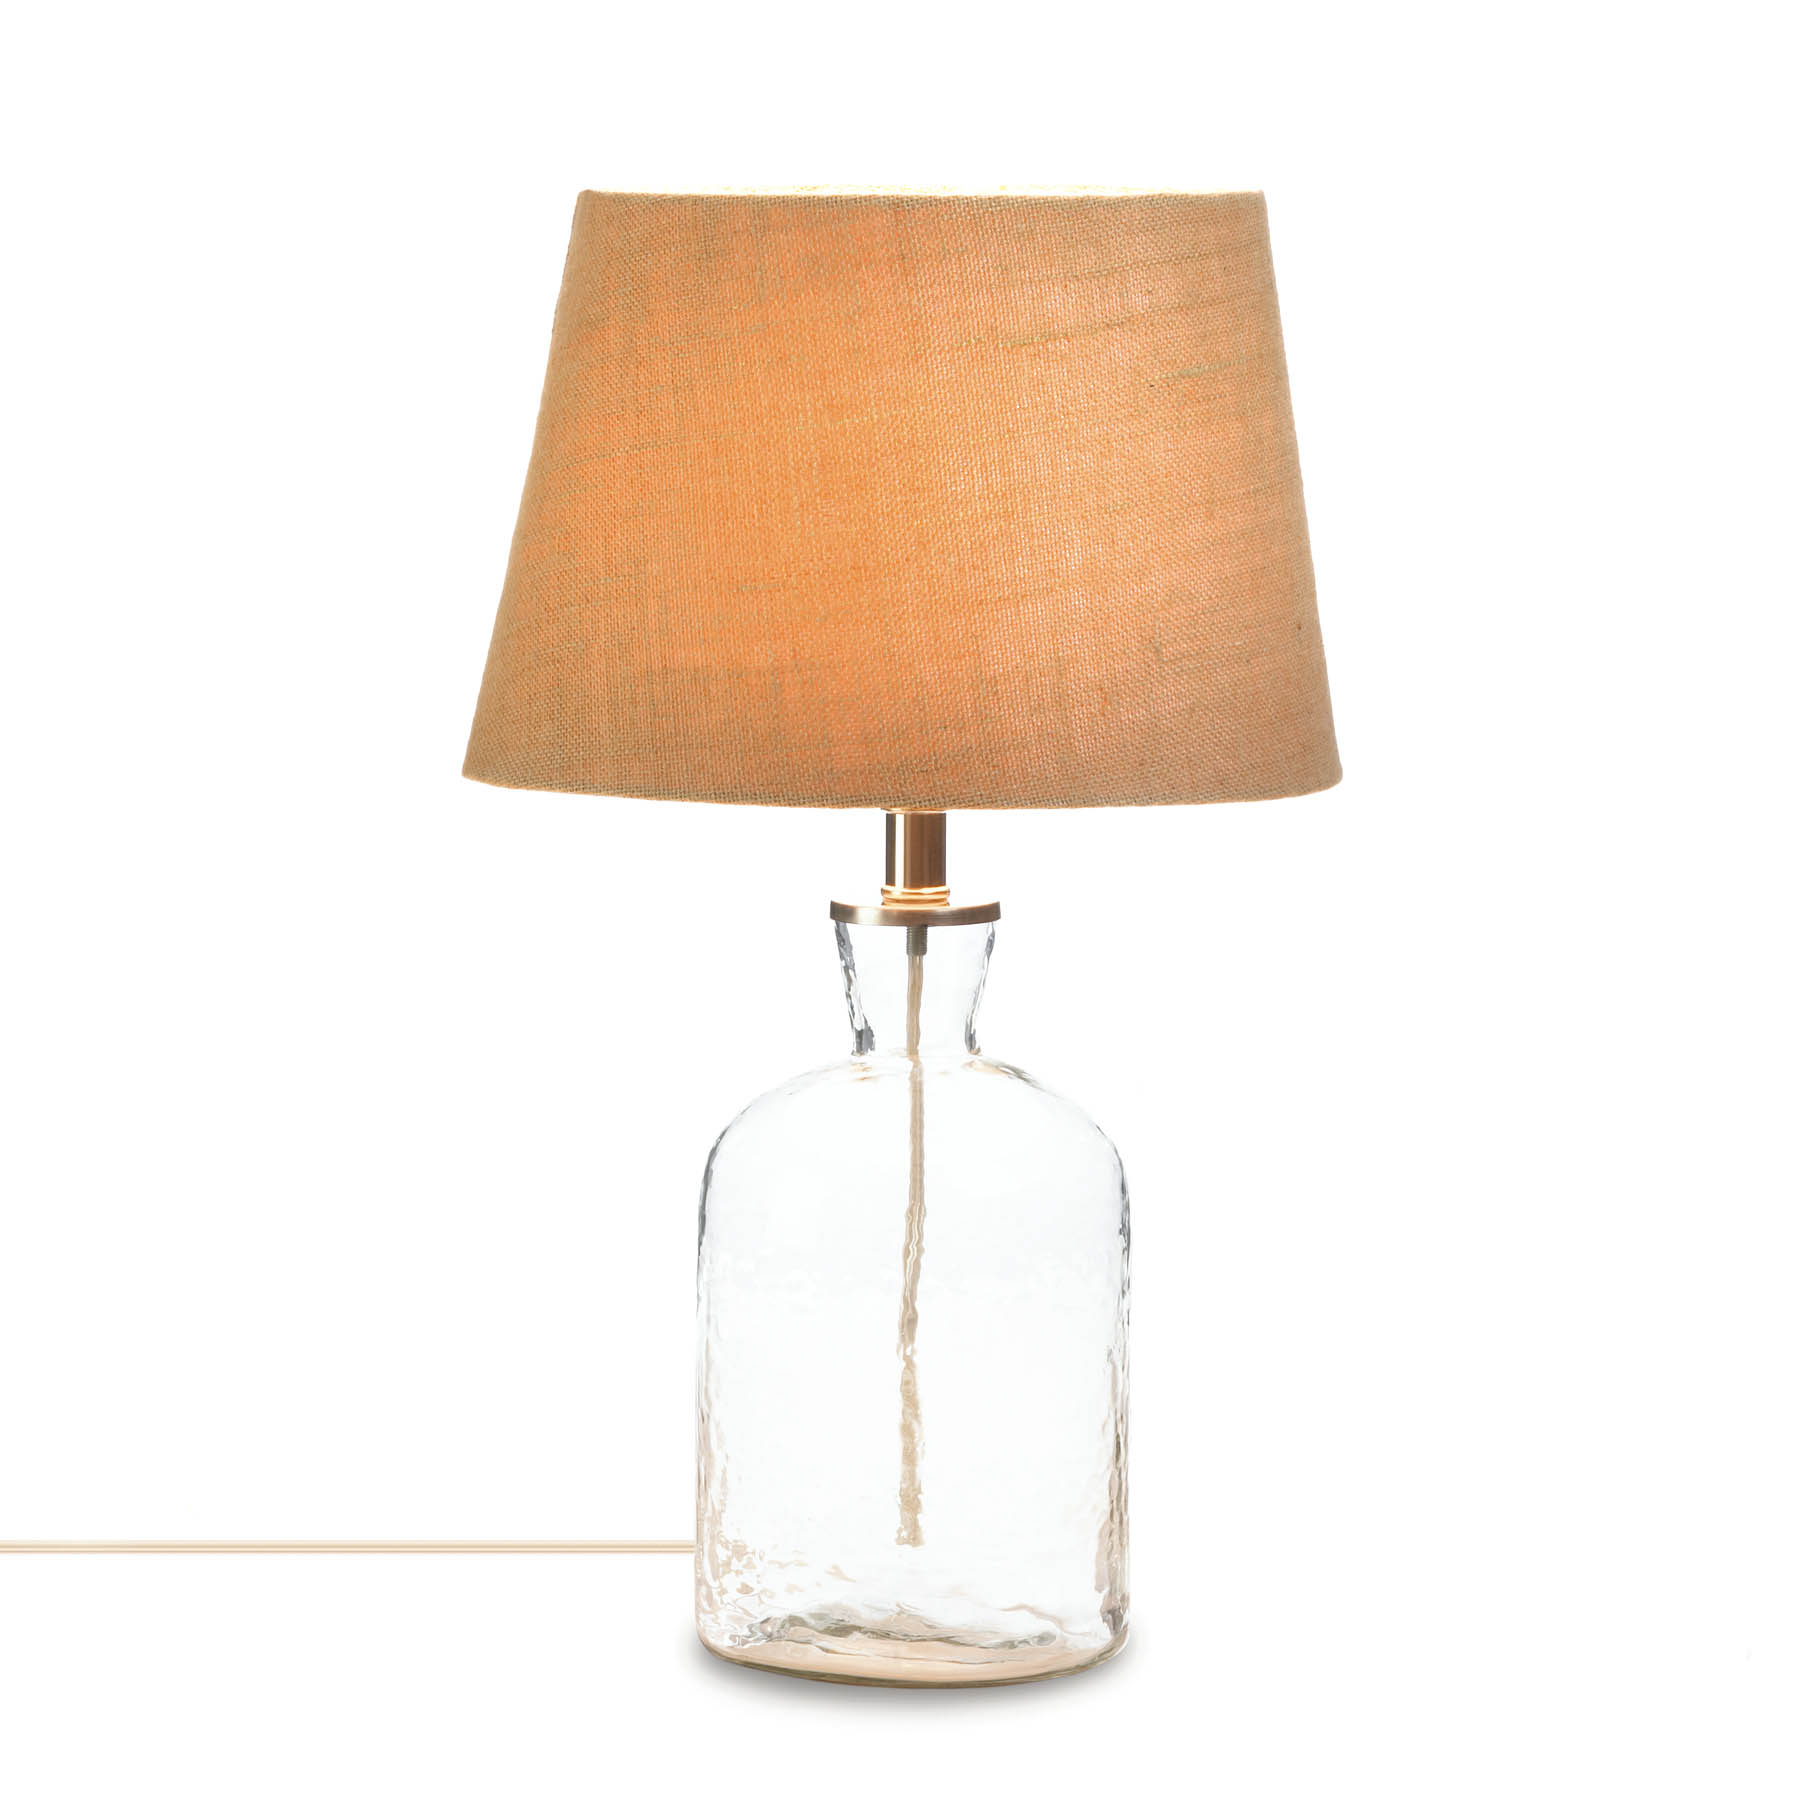 accent plus clear ripple glass bottle table lamp lamps loading narrow decorative over the couch ikea coffee industrial pub round drum side small retro person farm high bar and